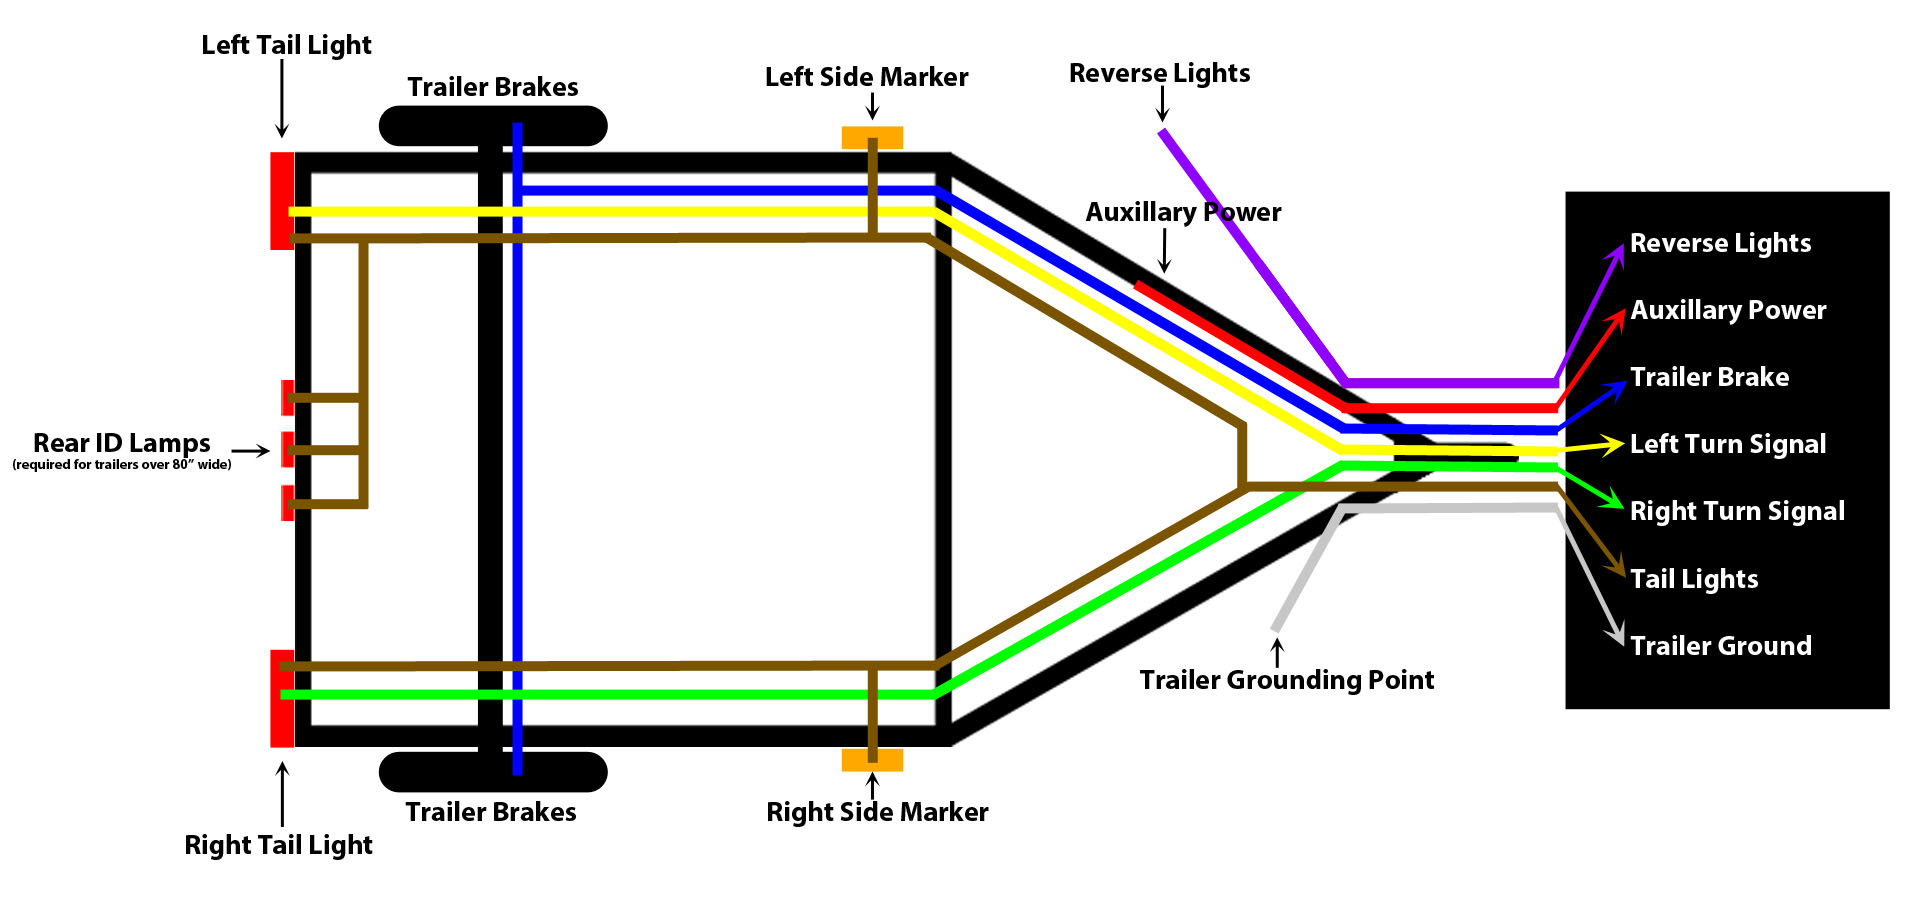 7 Pin Trailer Harness | Manual E-Books - Wiring Diagram For Trailer Harness